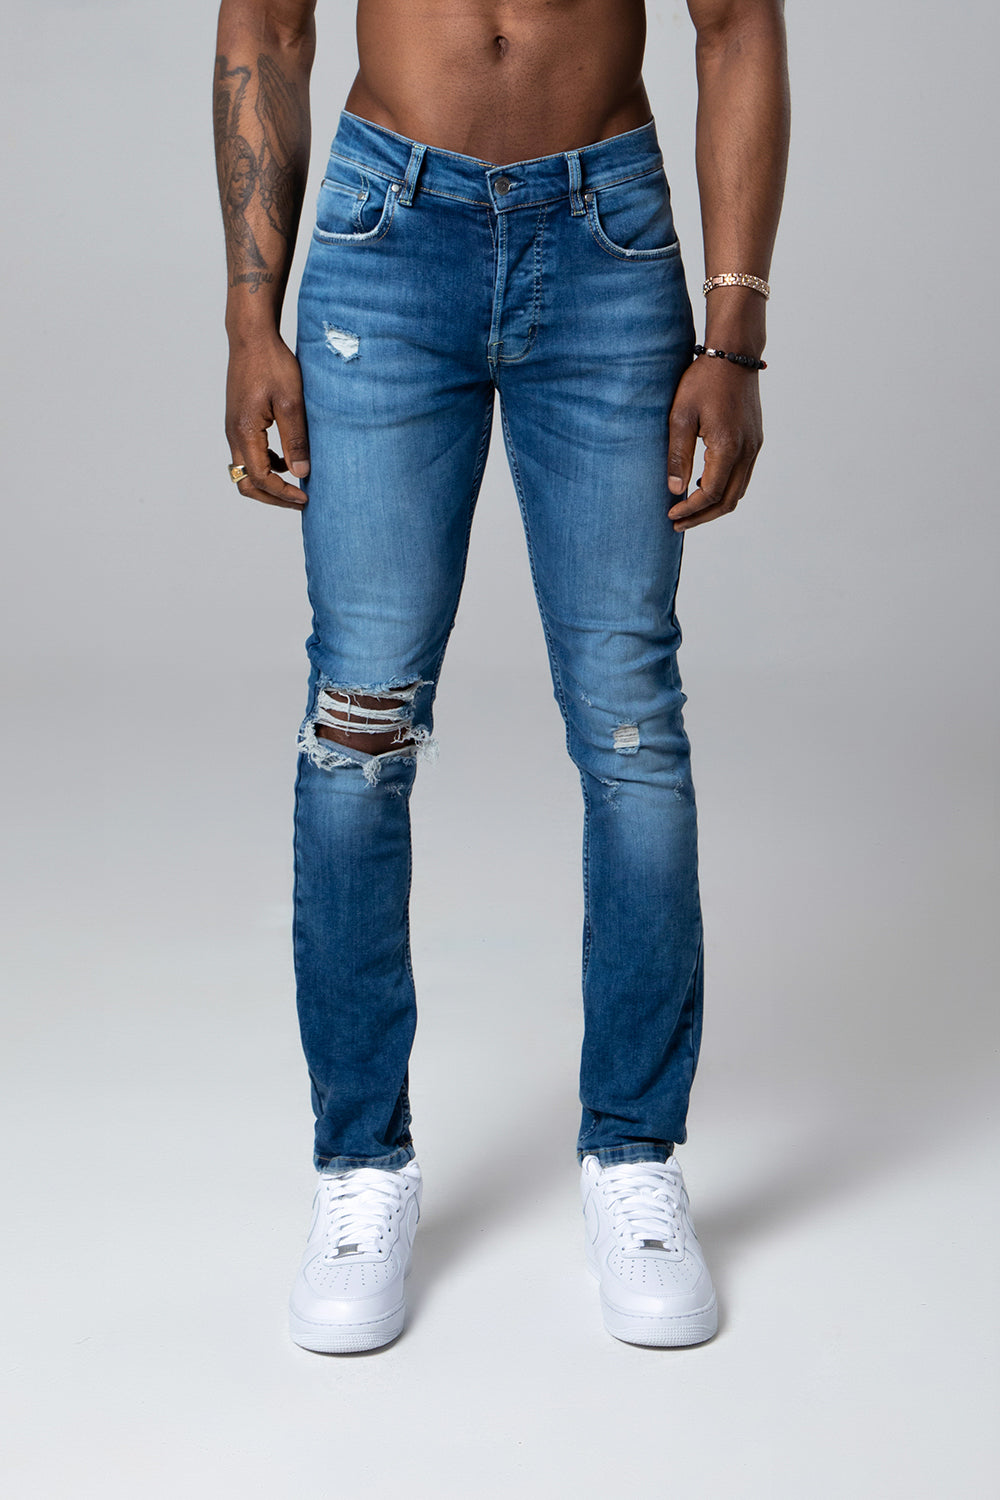 Manhattan Jeans- Blue wash